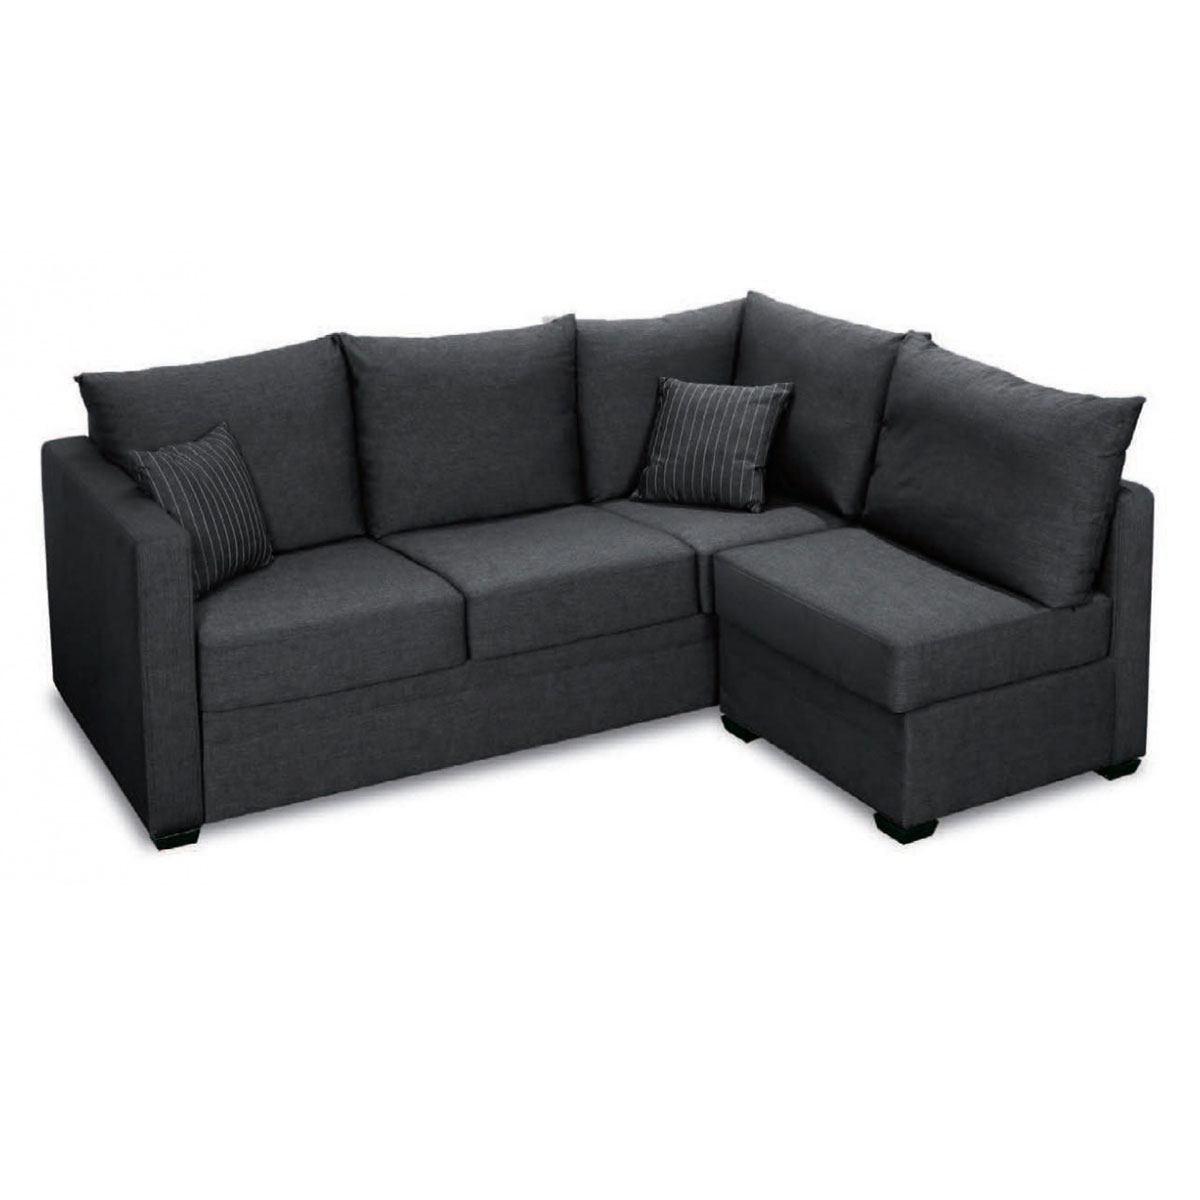 canap convertible diva week end royal sofa id e de canap et meuble maison. Black Bedroom Furniture Sets. Home Design Ideas